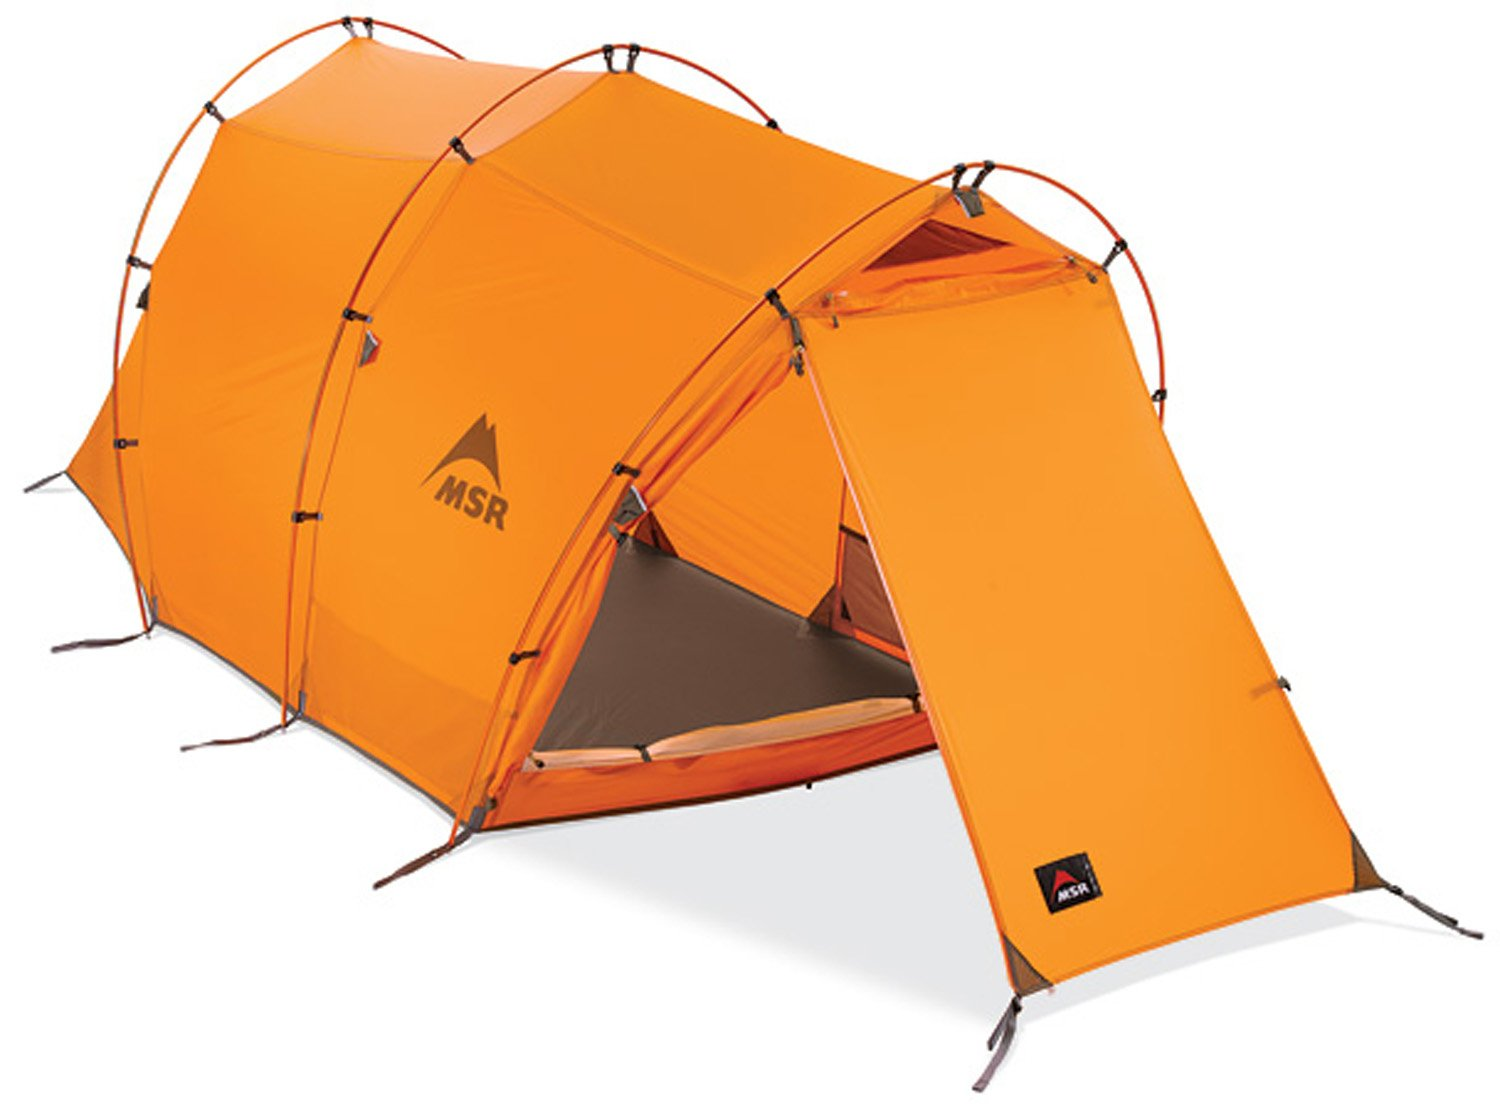 sc 1 st  Amazon.com & Amazon.com: MSR Dragontail Tent: Sports u0026 Outdoors